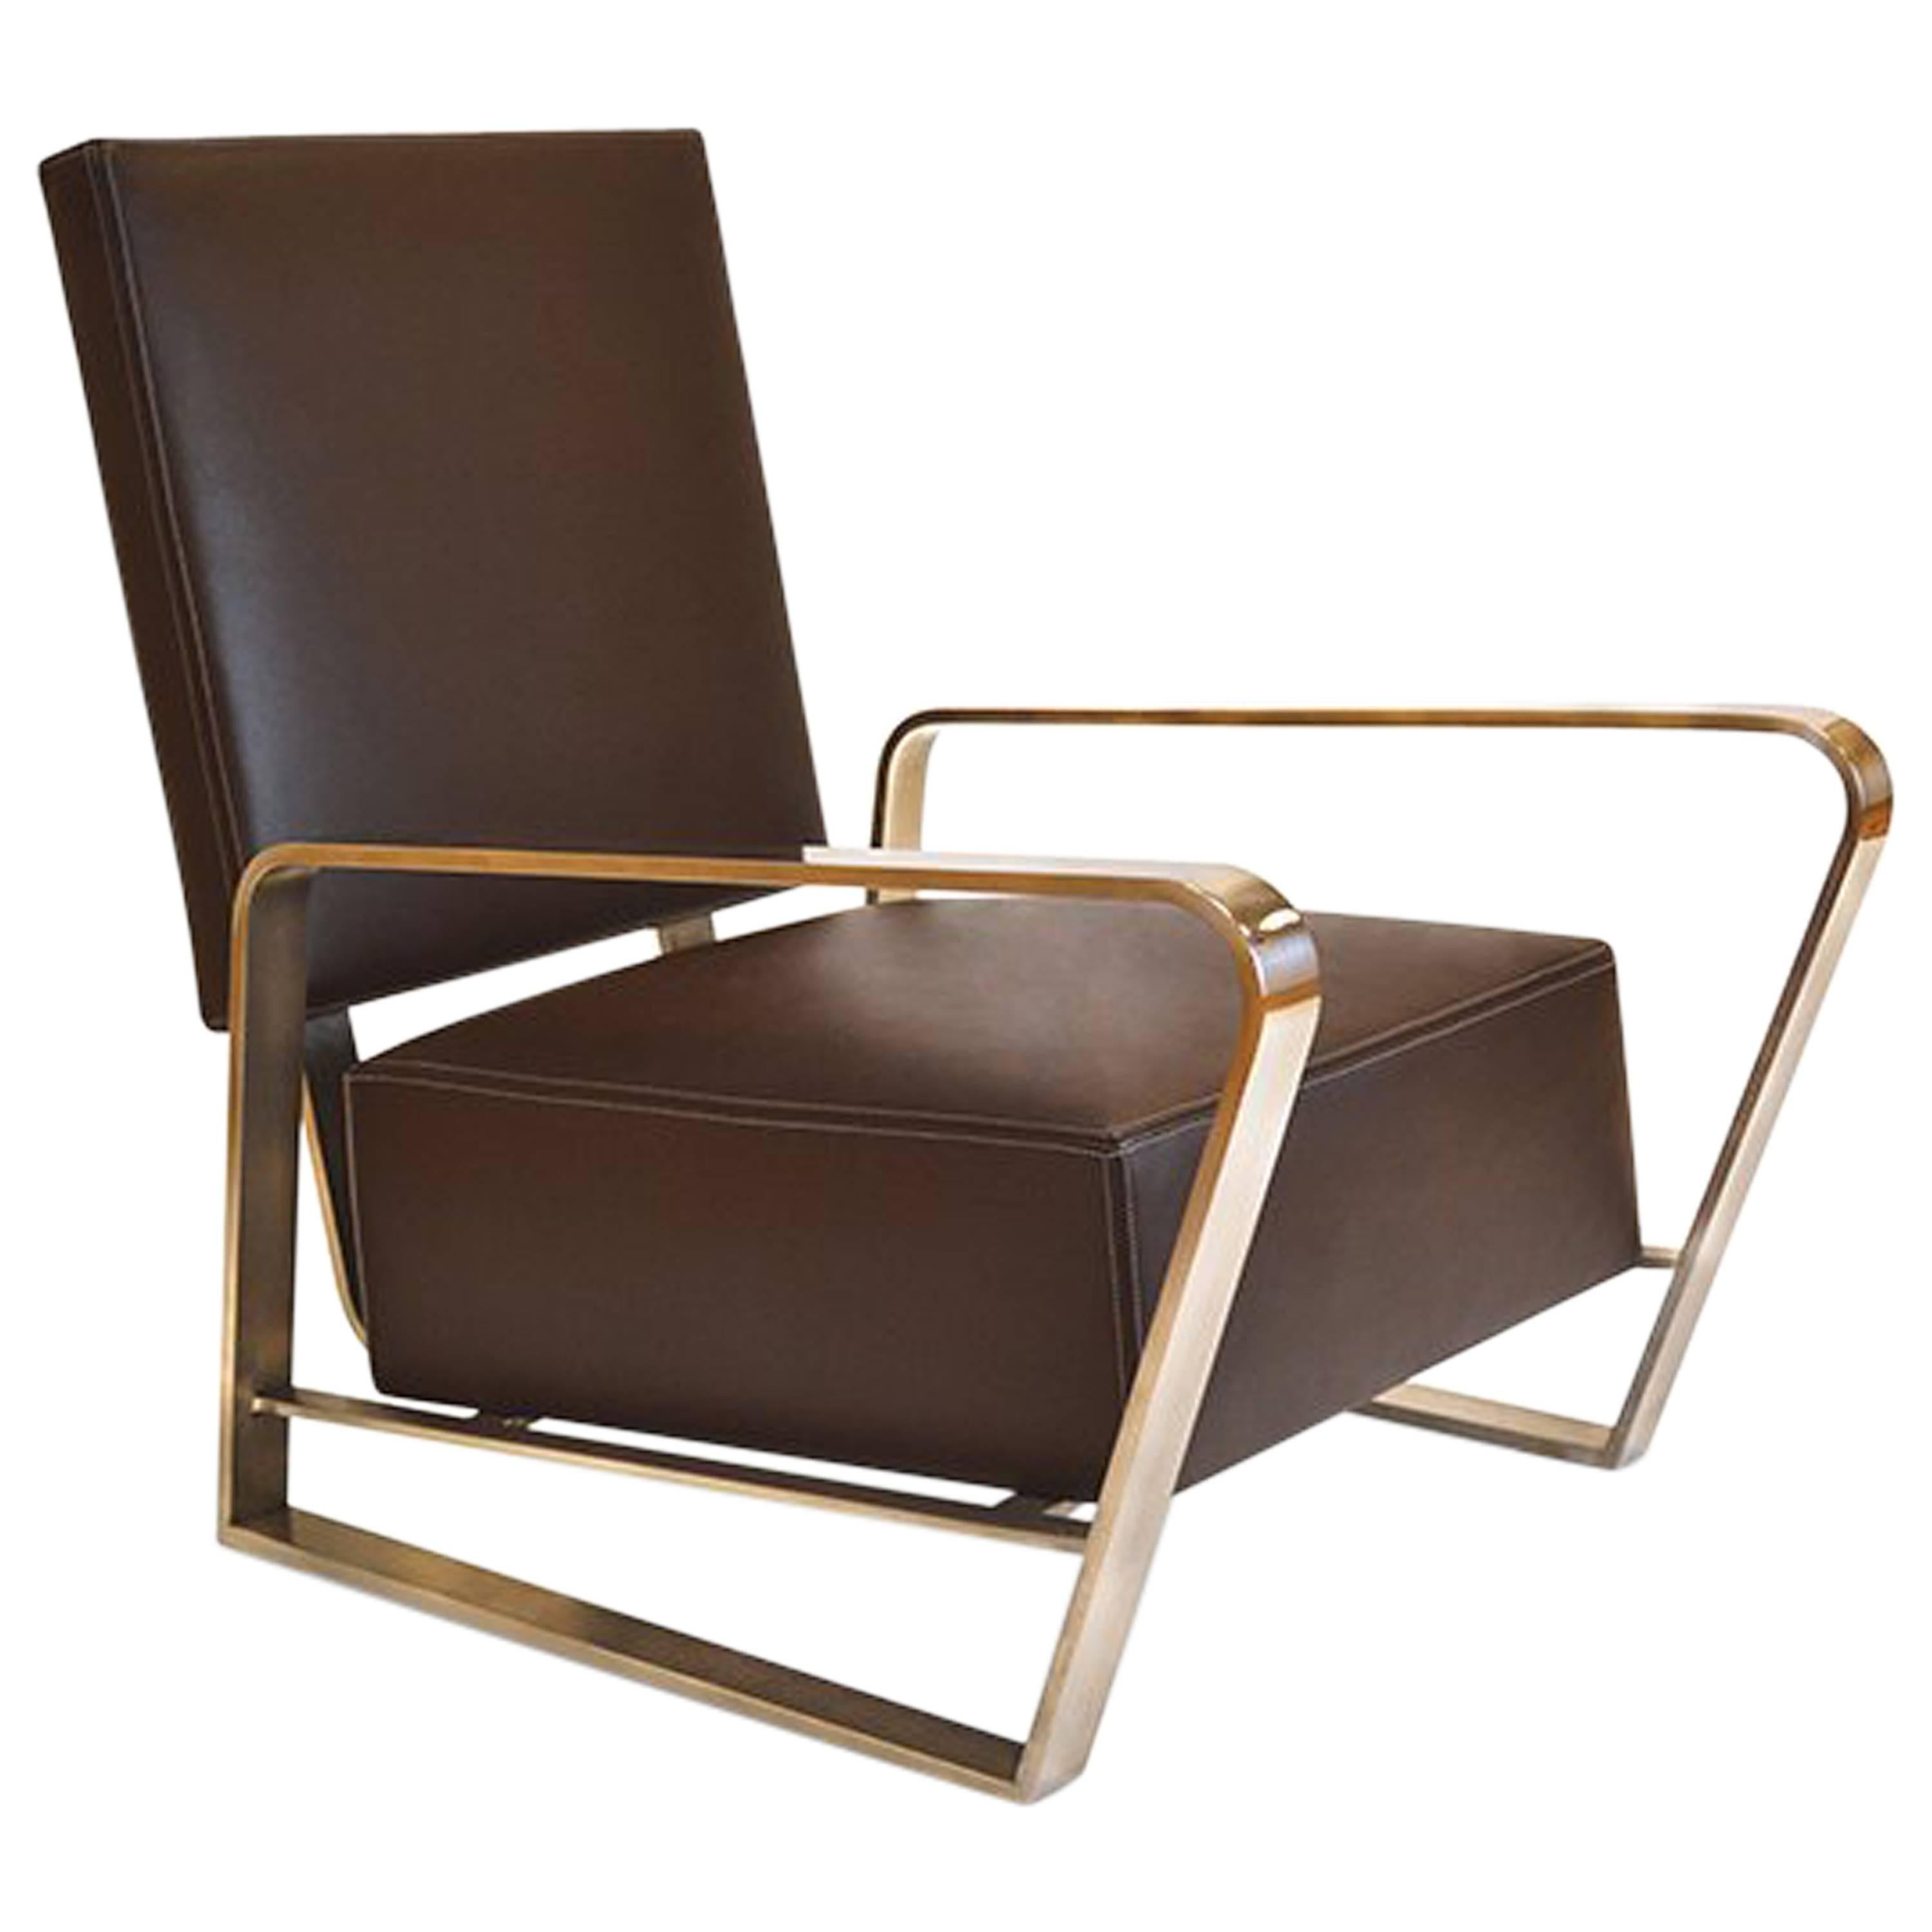 Corliss Lounge Armchair with Leather Seating and Polished Stainless Steel Body